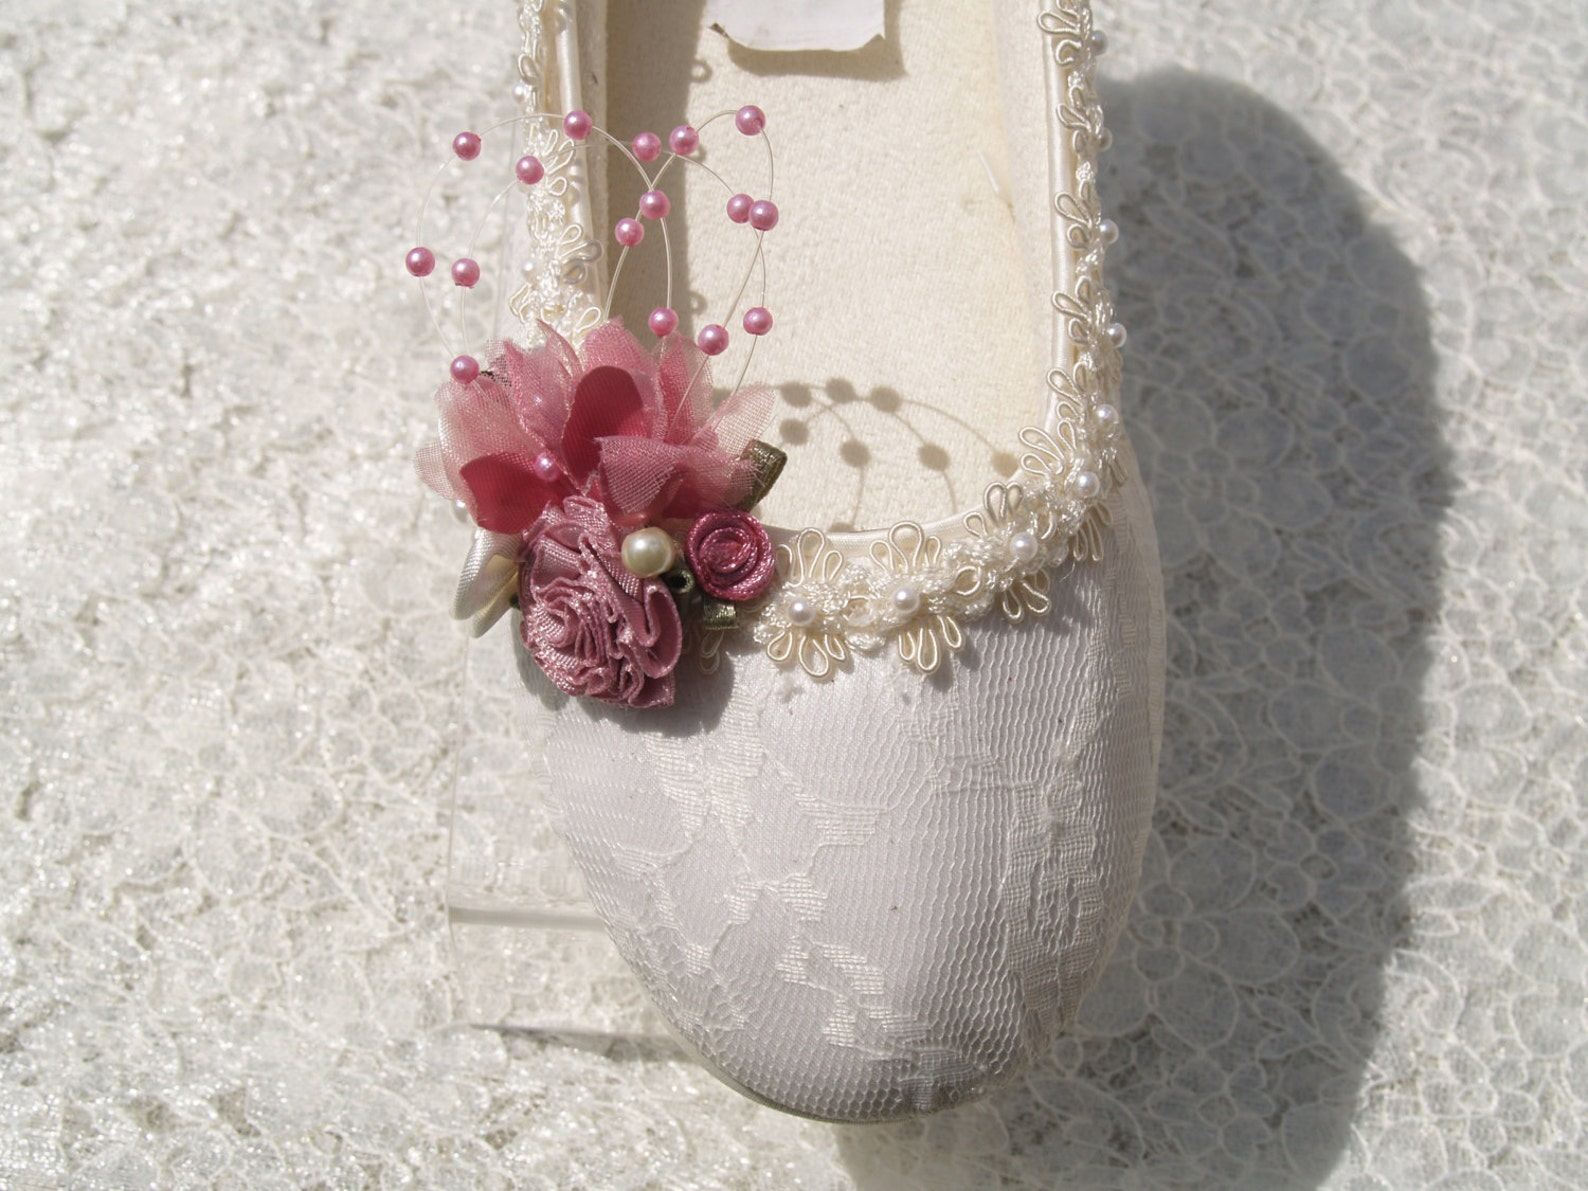 size 5 wedding ivory flats vegan rose shoes ready to ship embellished w pearls gimp edge,gorgeous victorian style ballet slipper